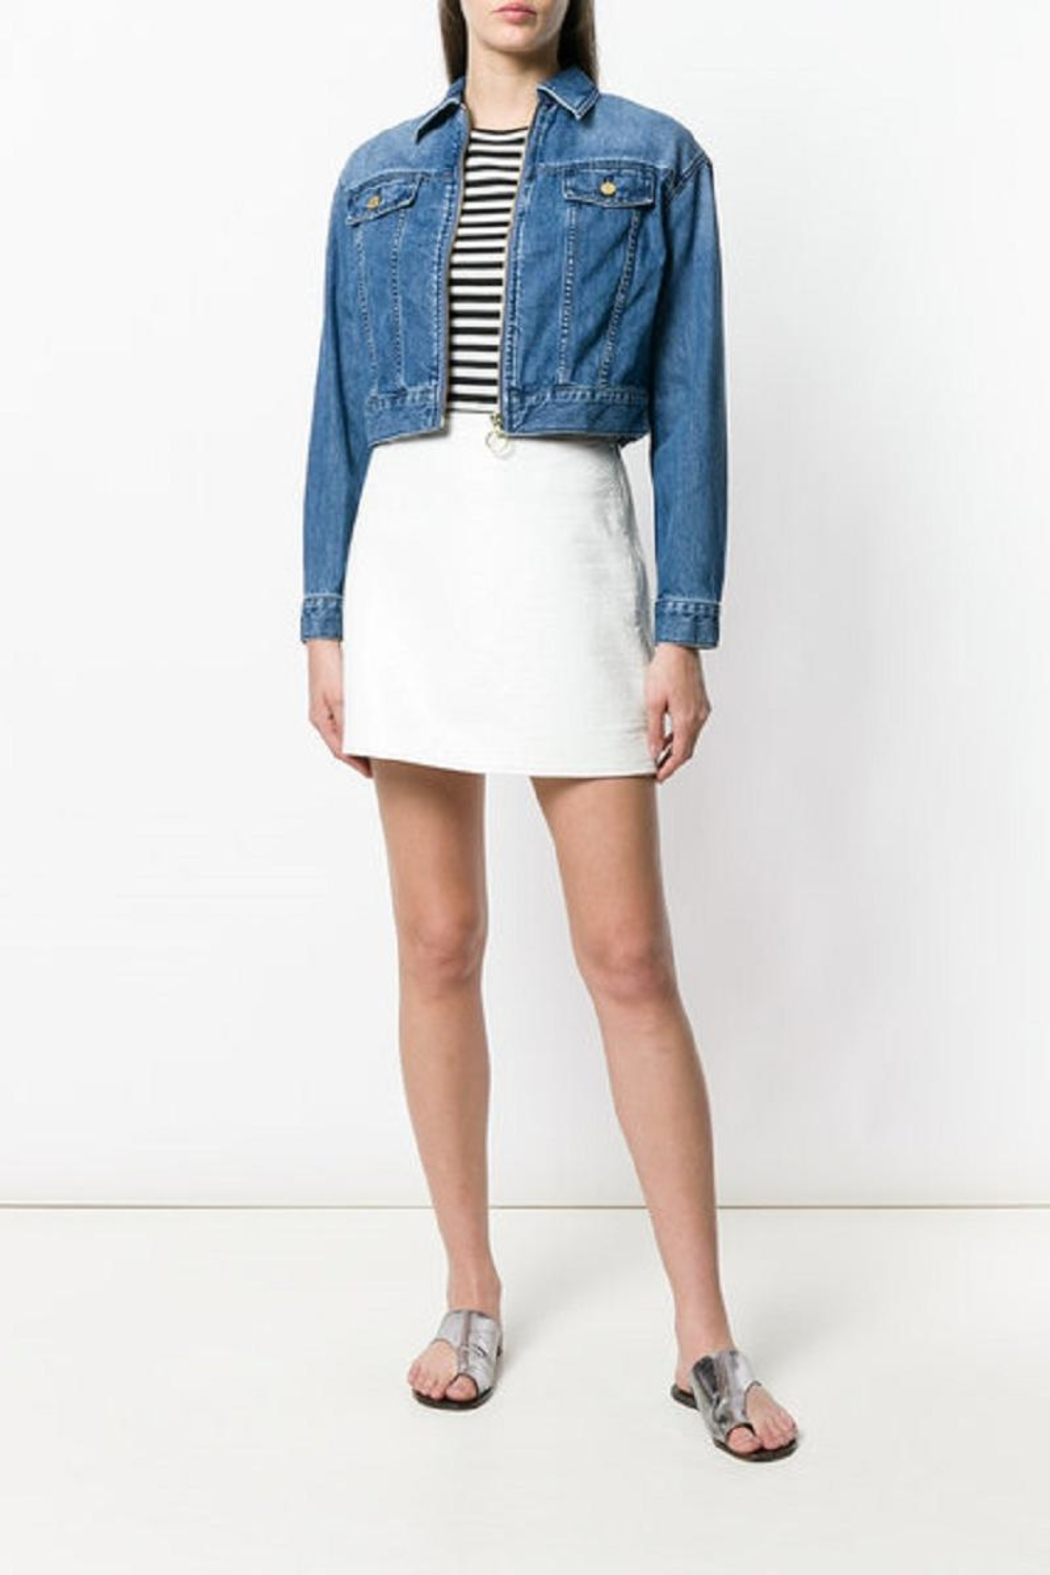 Michael Kors Zippered-Cropped Denim Jacket - Front Cropped Image